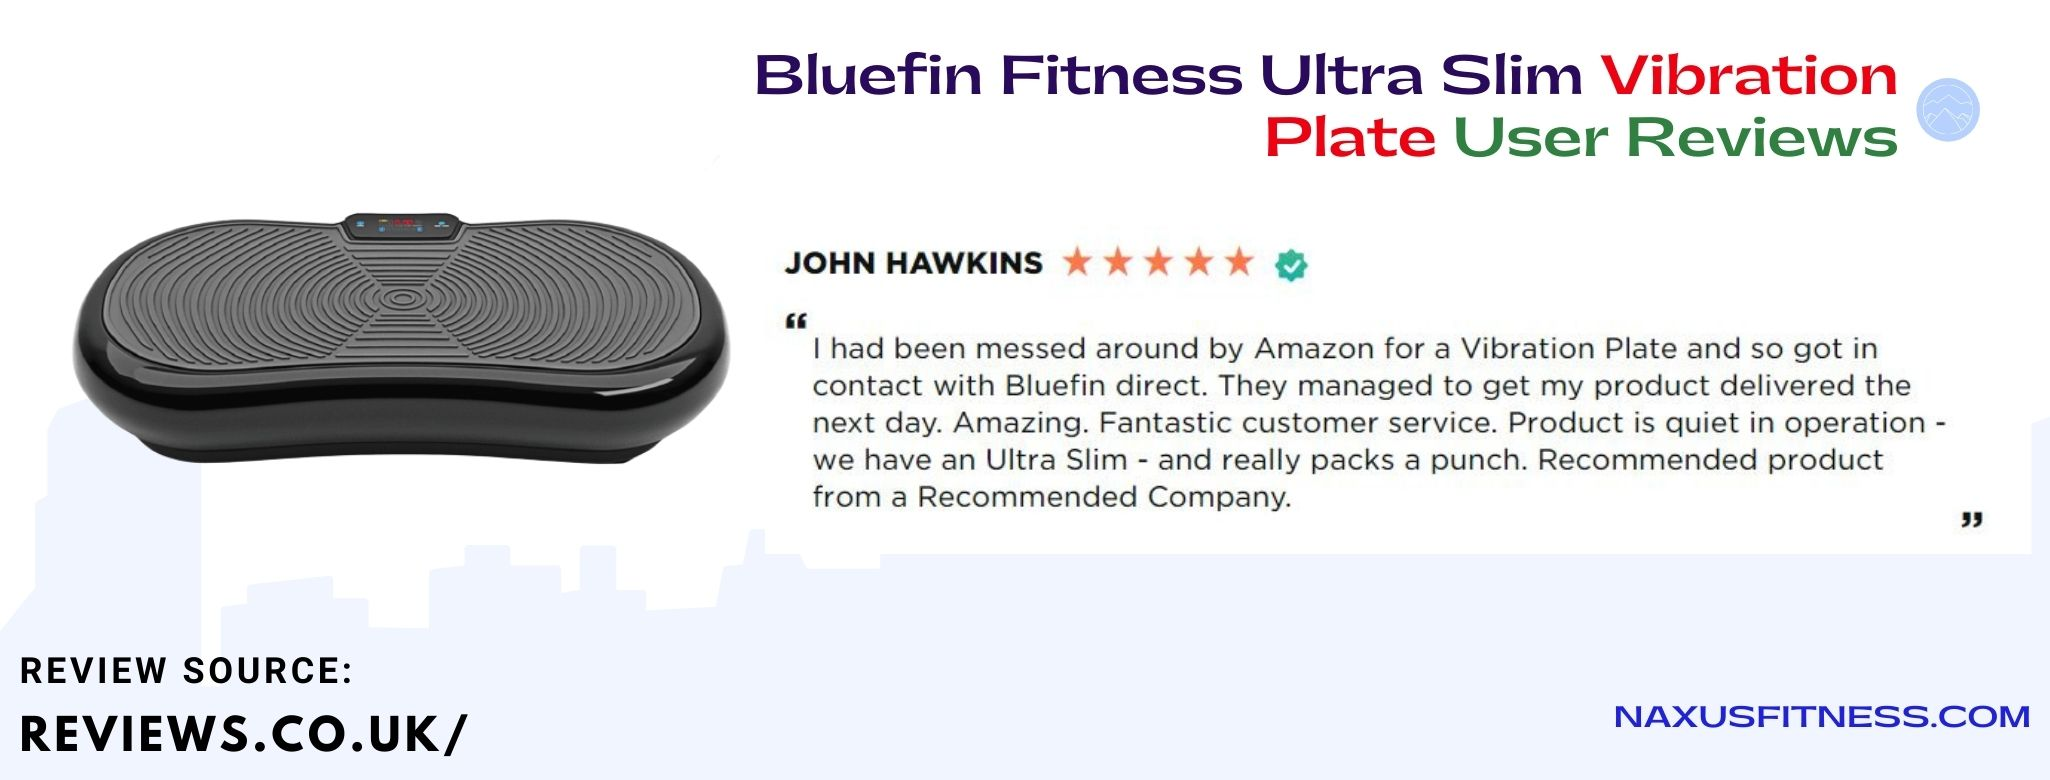 Bluefin ultra slim vibration user reviews